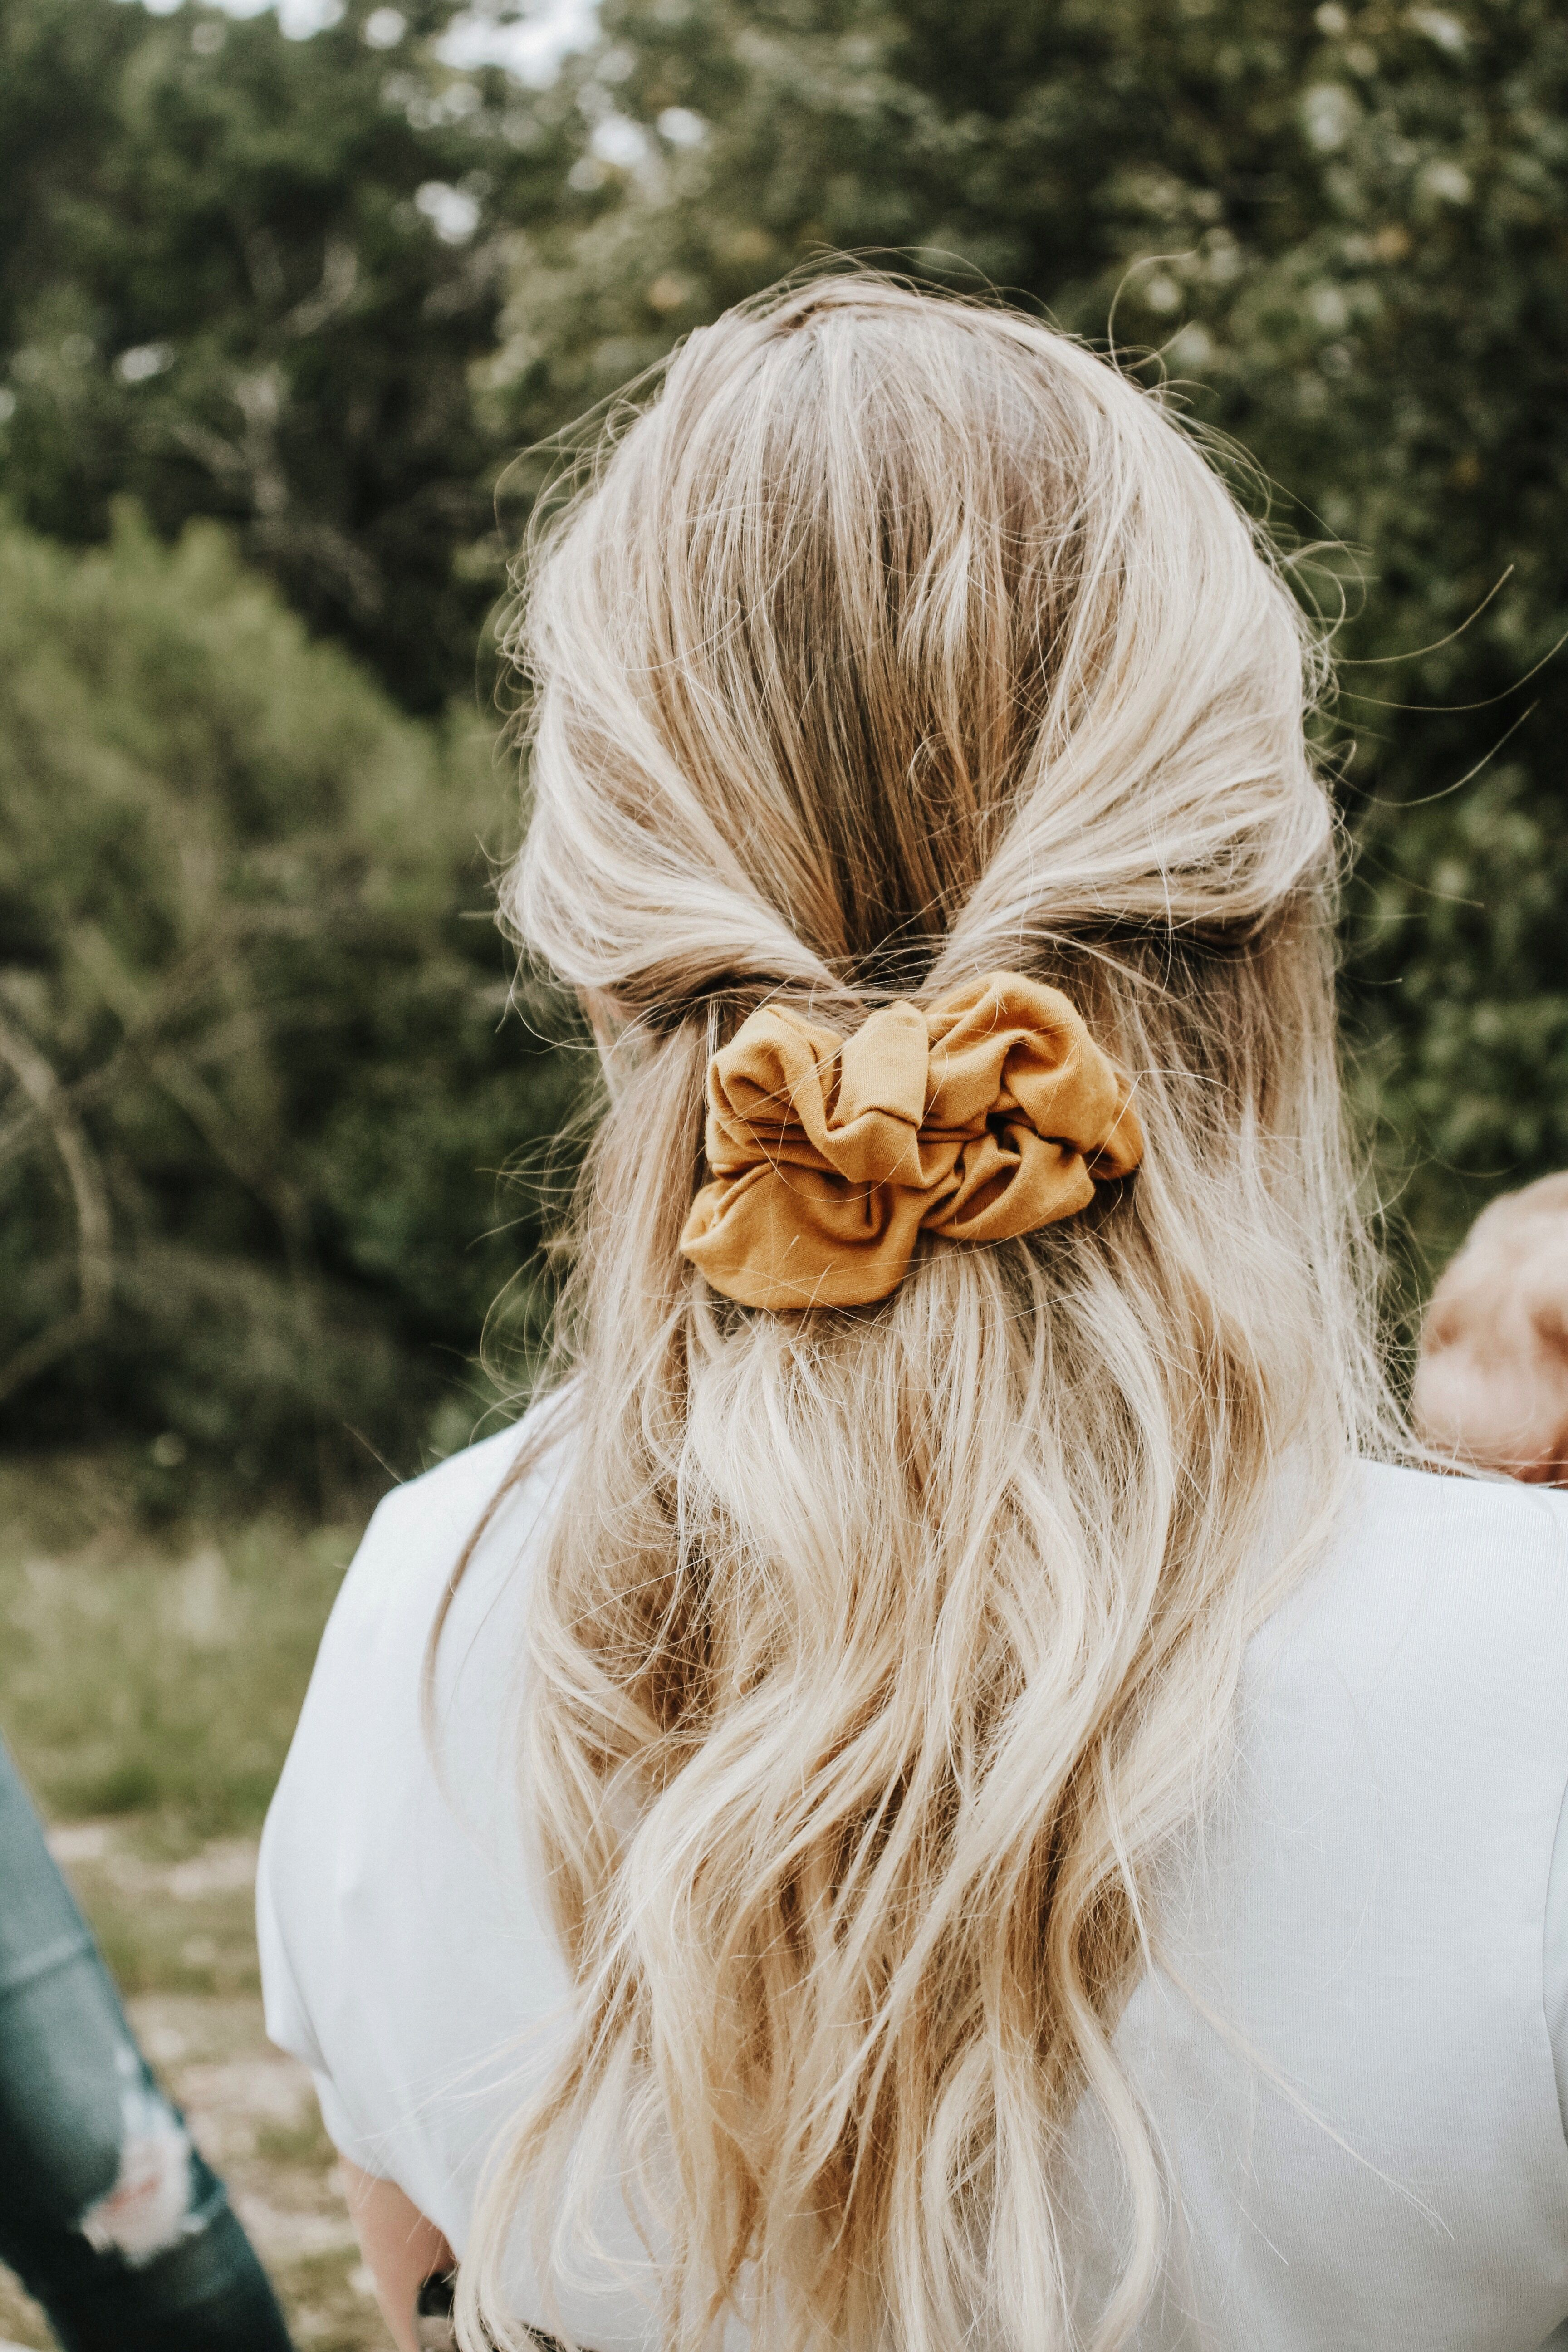 15 Scrunchie Hairstyles - How To Wear a Scrunchie, scrunchie bun, scrunchies, scrunchie hairstyles curly hair,how to use a scrunchie to make a bun